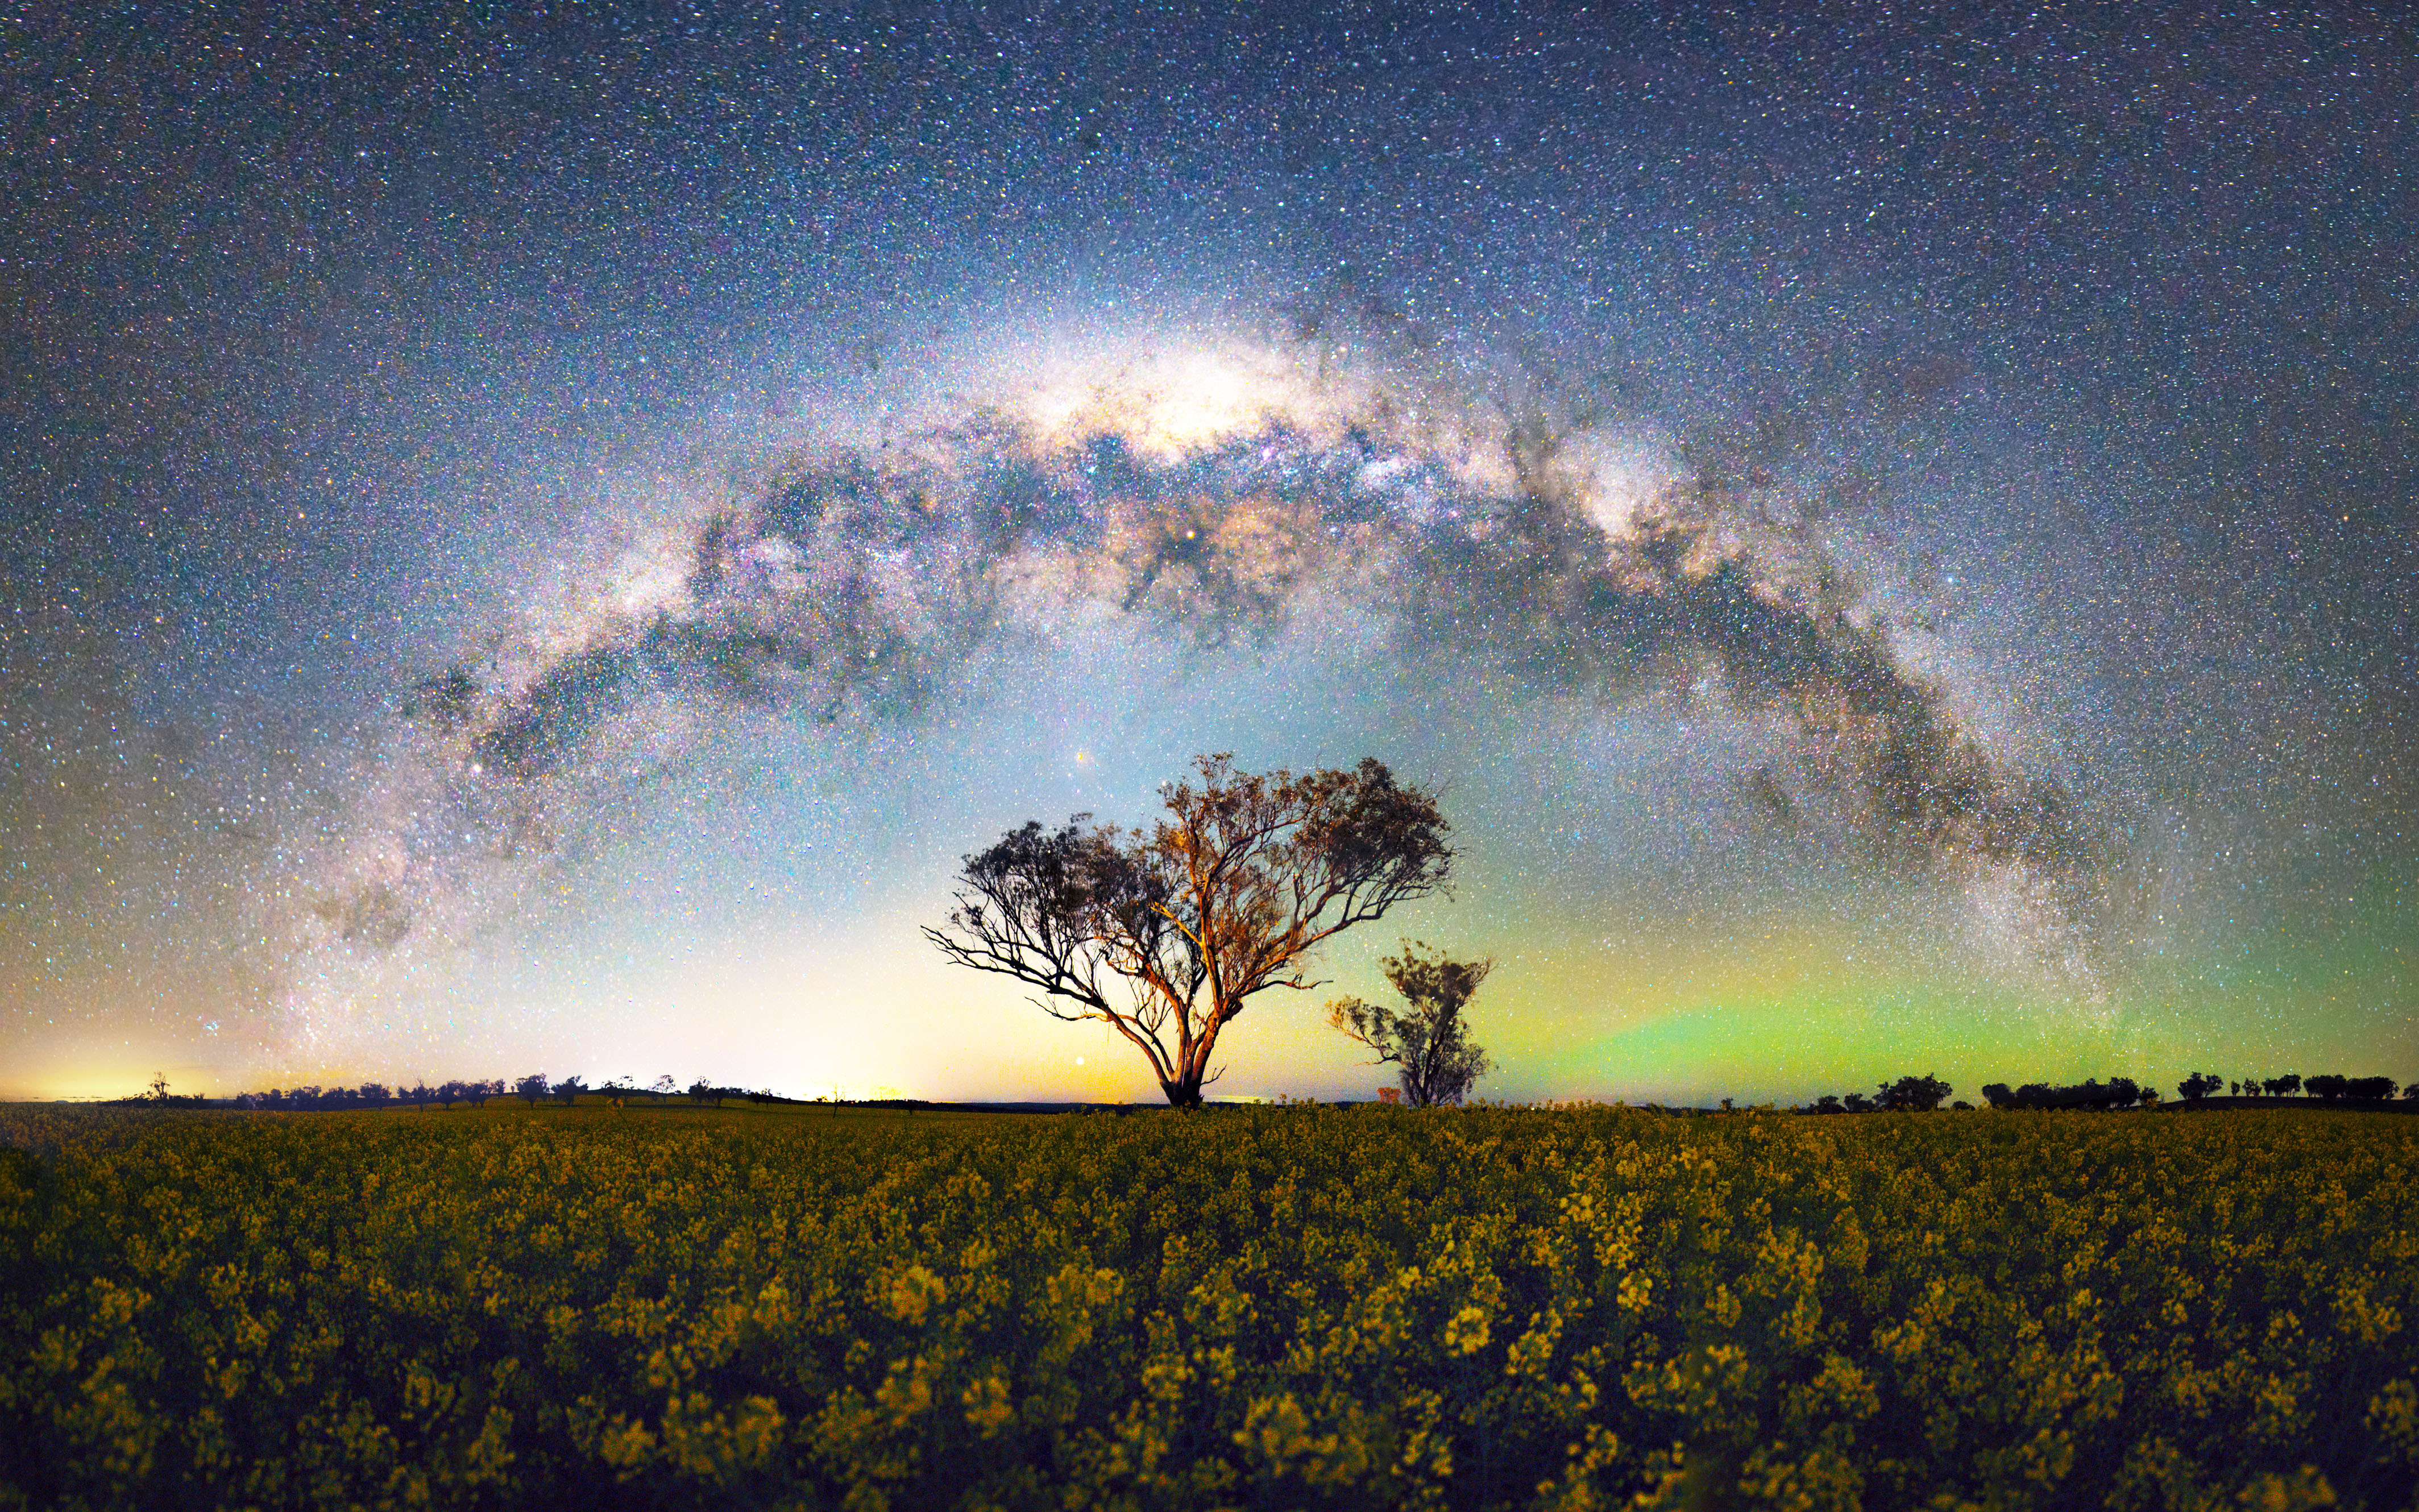 Milky Way Photography - Everything you need to know!   The